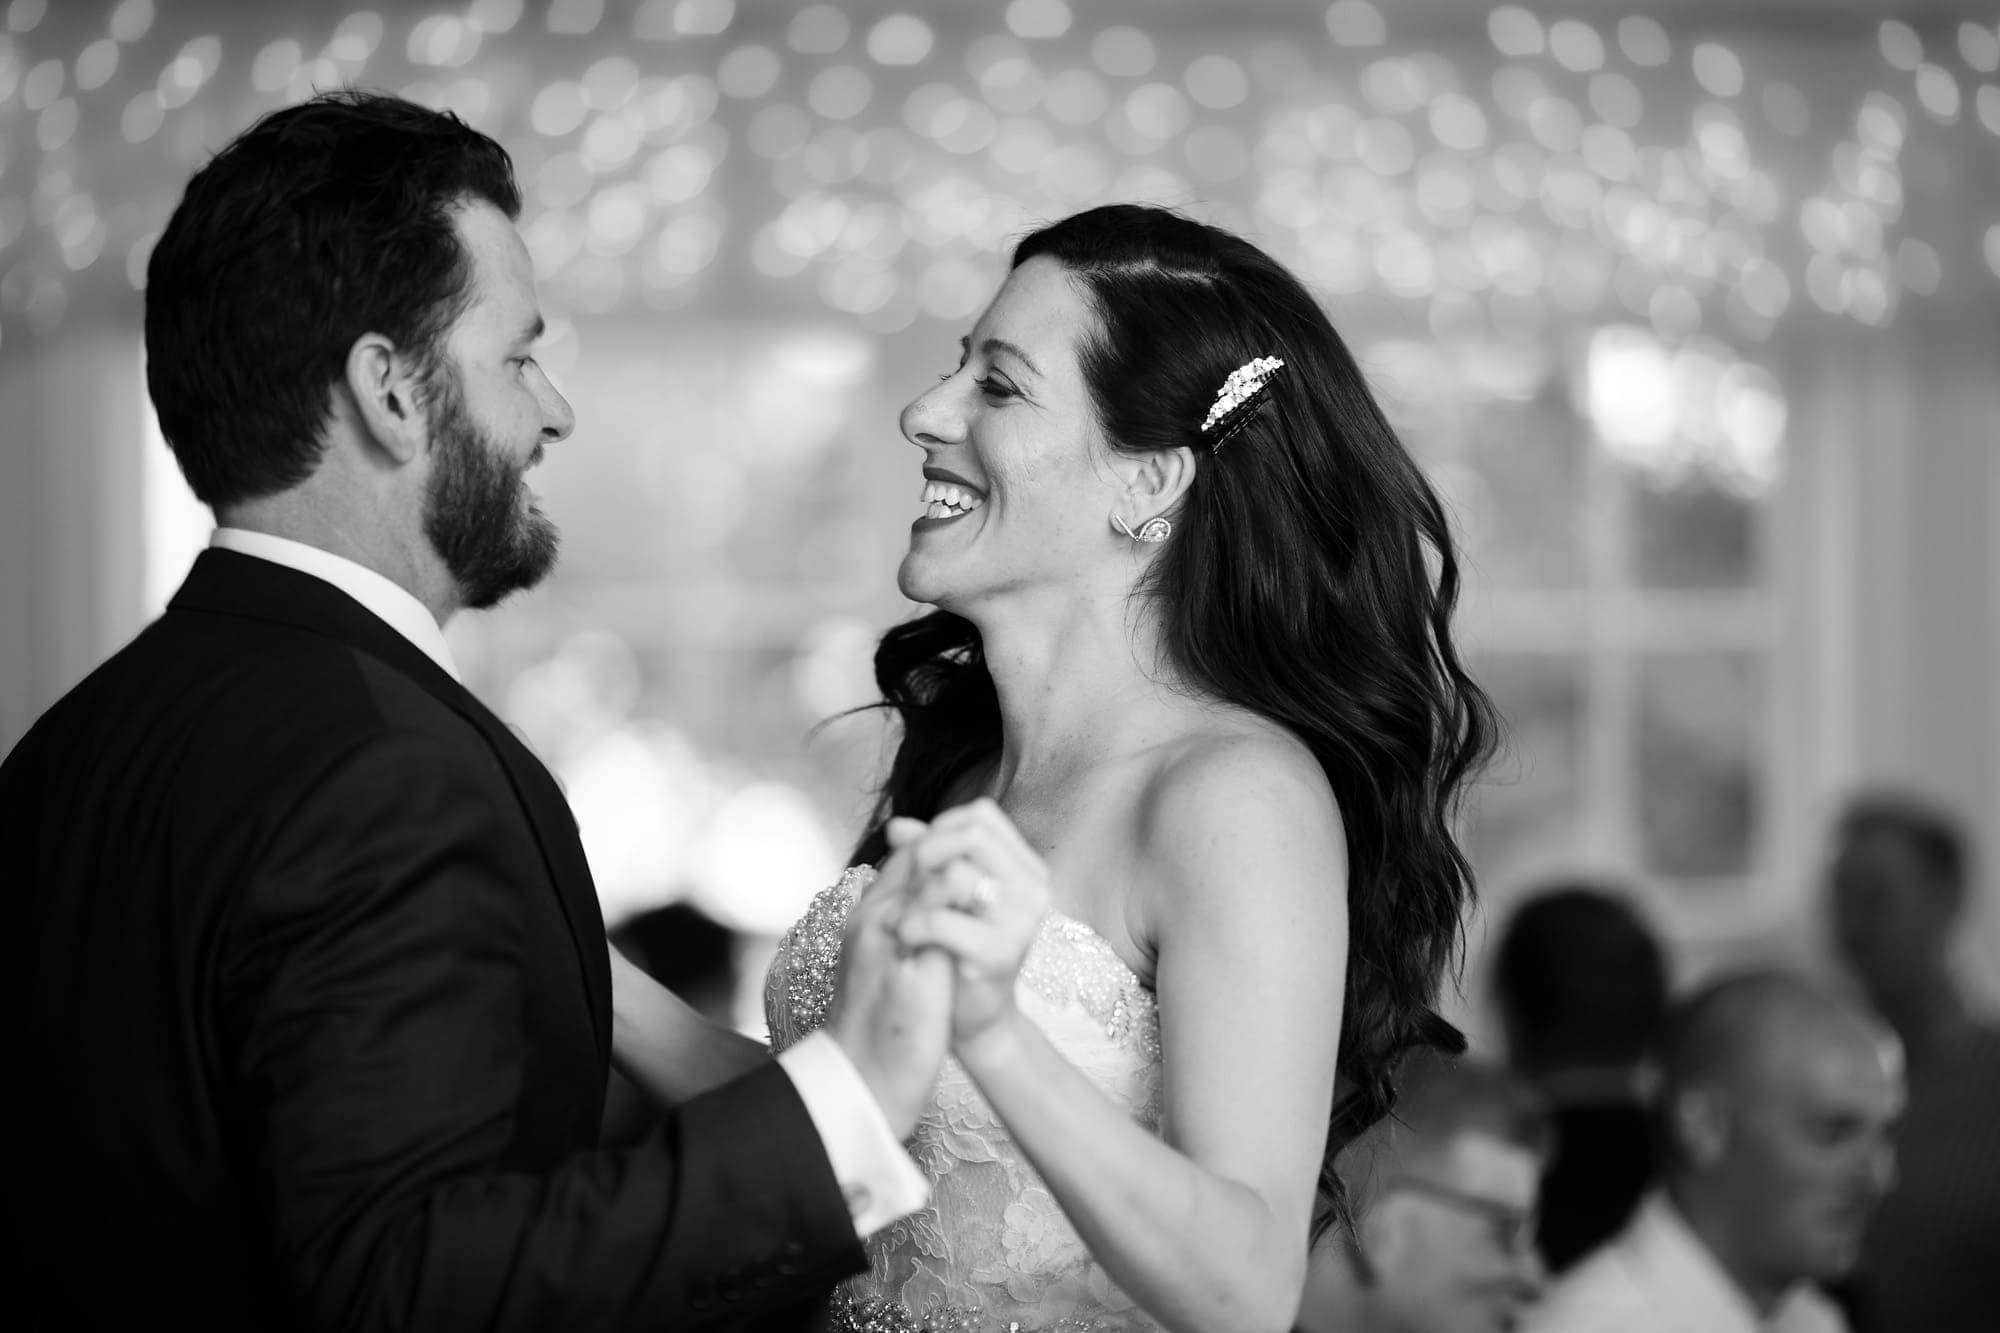 Blake and Gina share a first dance together as husband and wife during their Willow Ridge Manor wedding